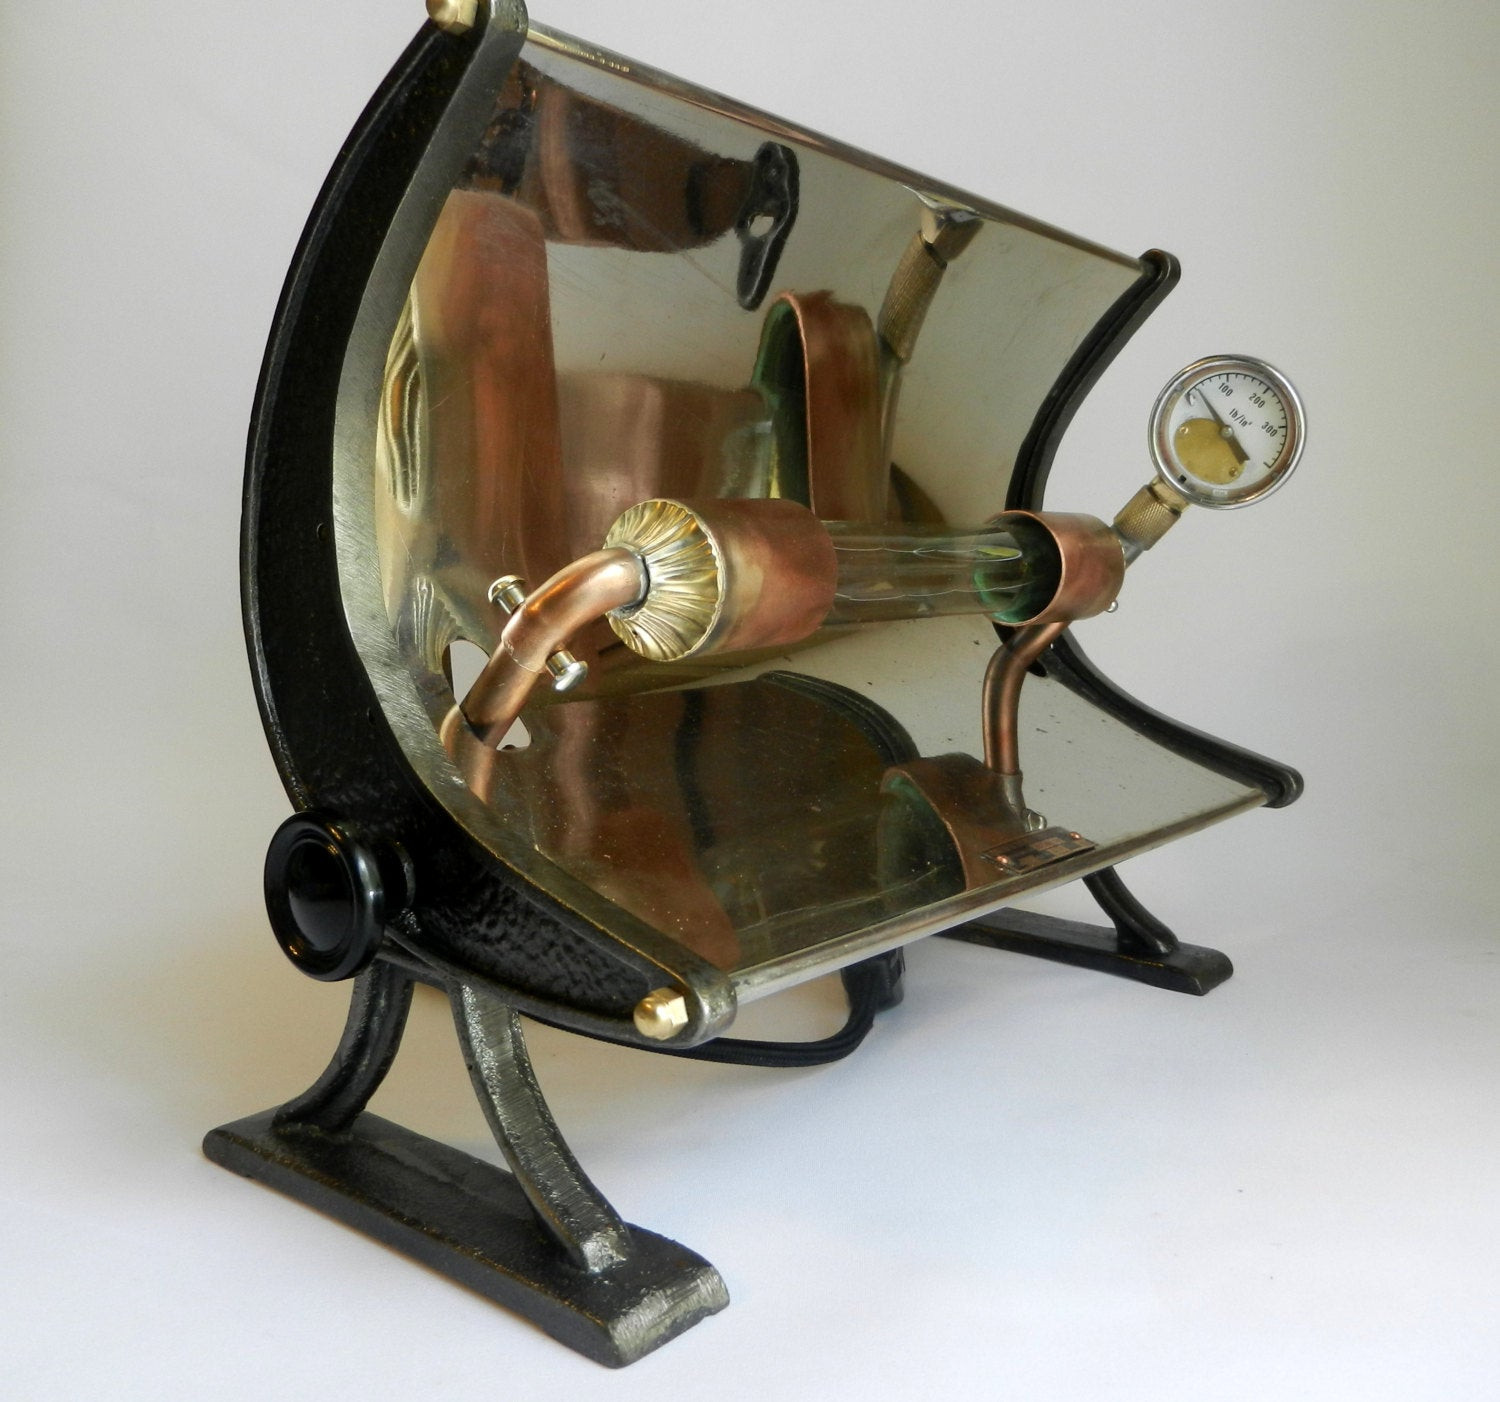 Best ideas about Steampunk Desk Lamp . Save or Pin Steampunk Desk Lamp hand crafted from early 1900 s Now.